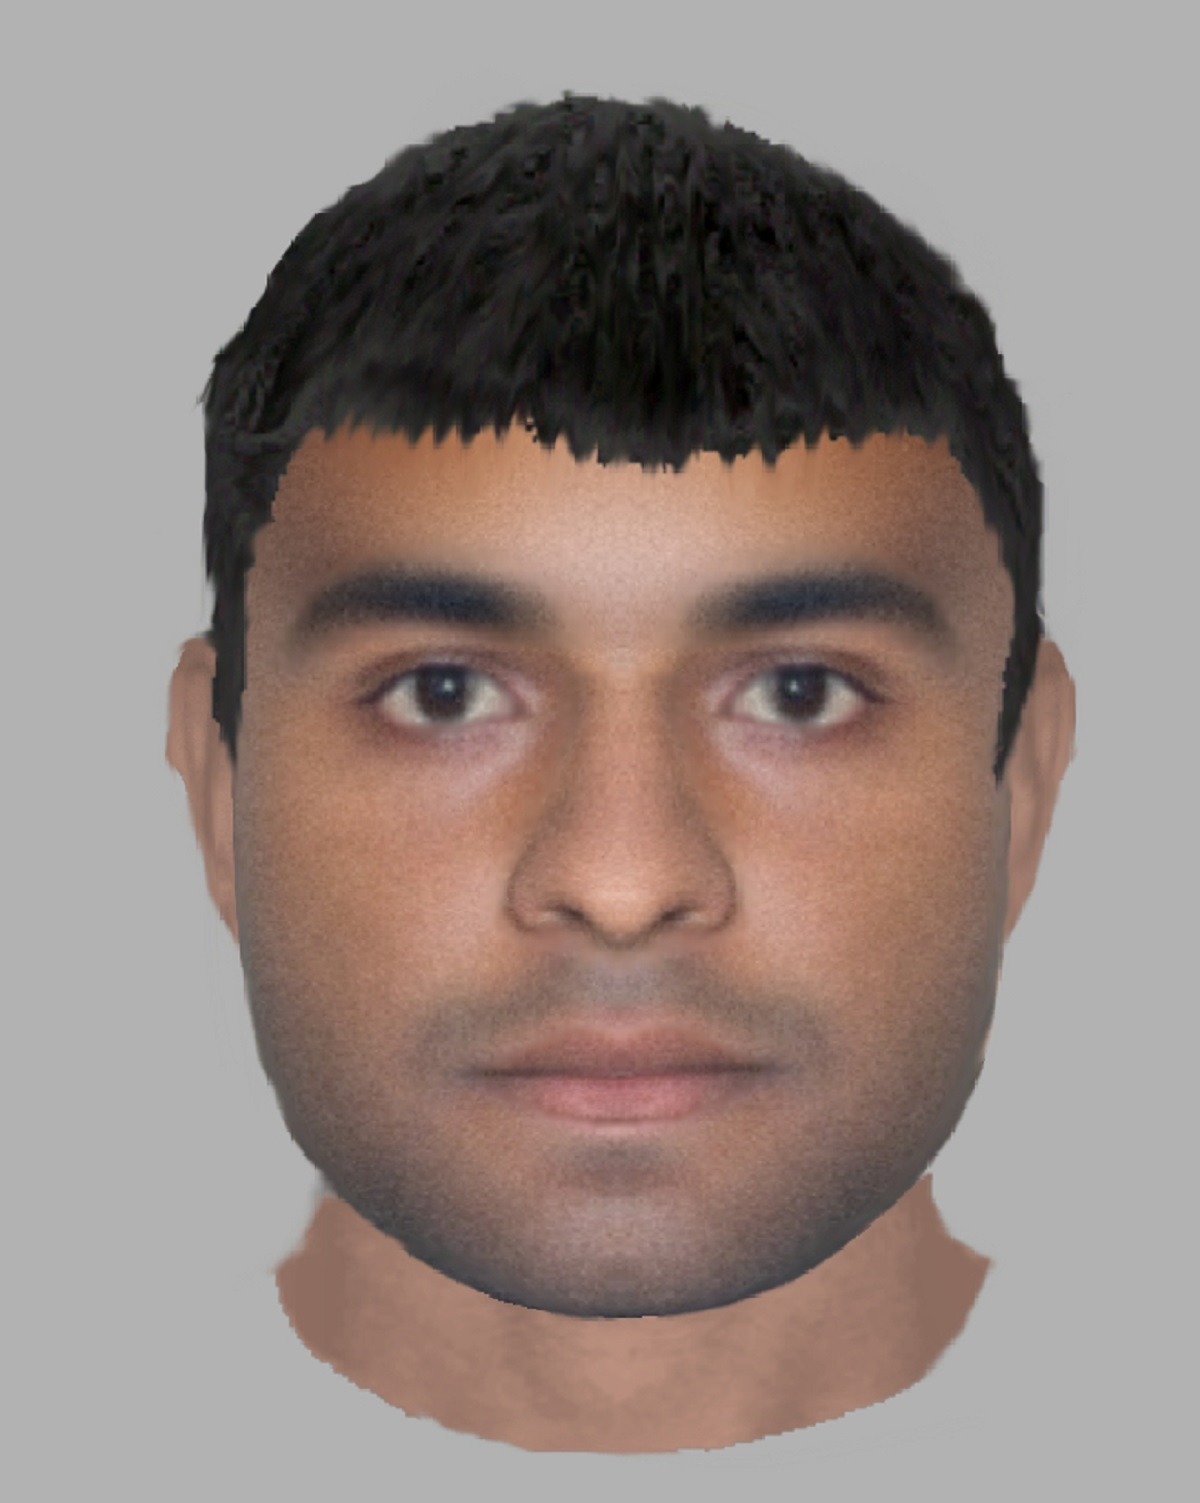 The e-fit released by police today